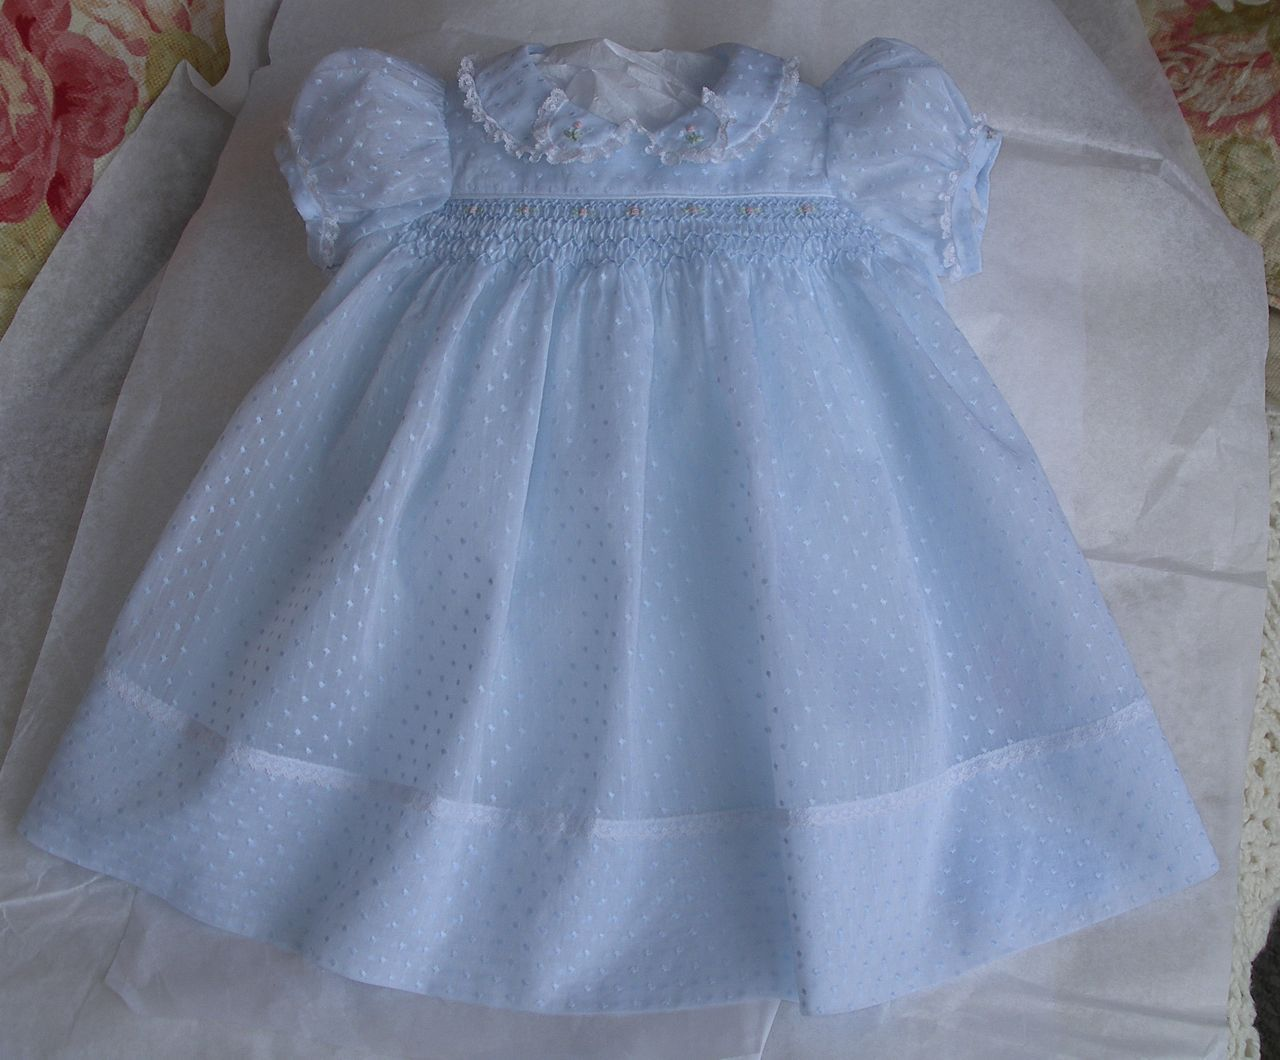 Baby Dress is from Emma\'s Smocked Baby Dresses. I just received my ...